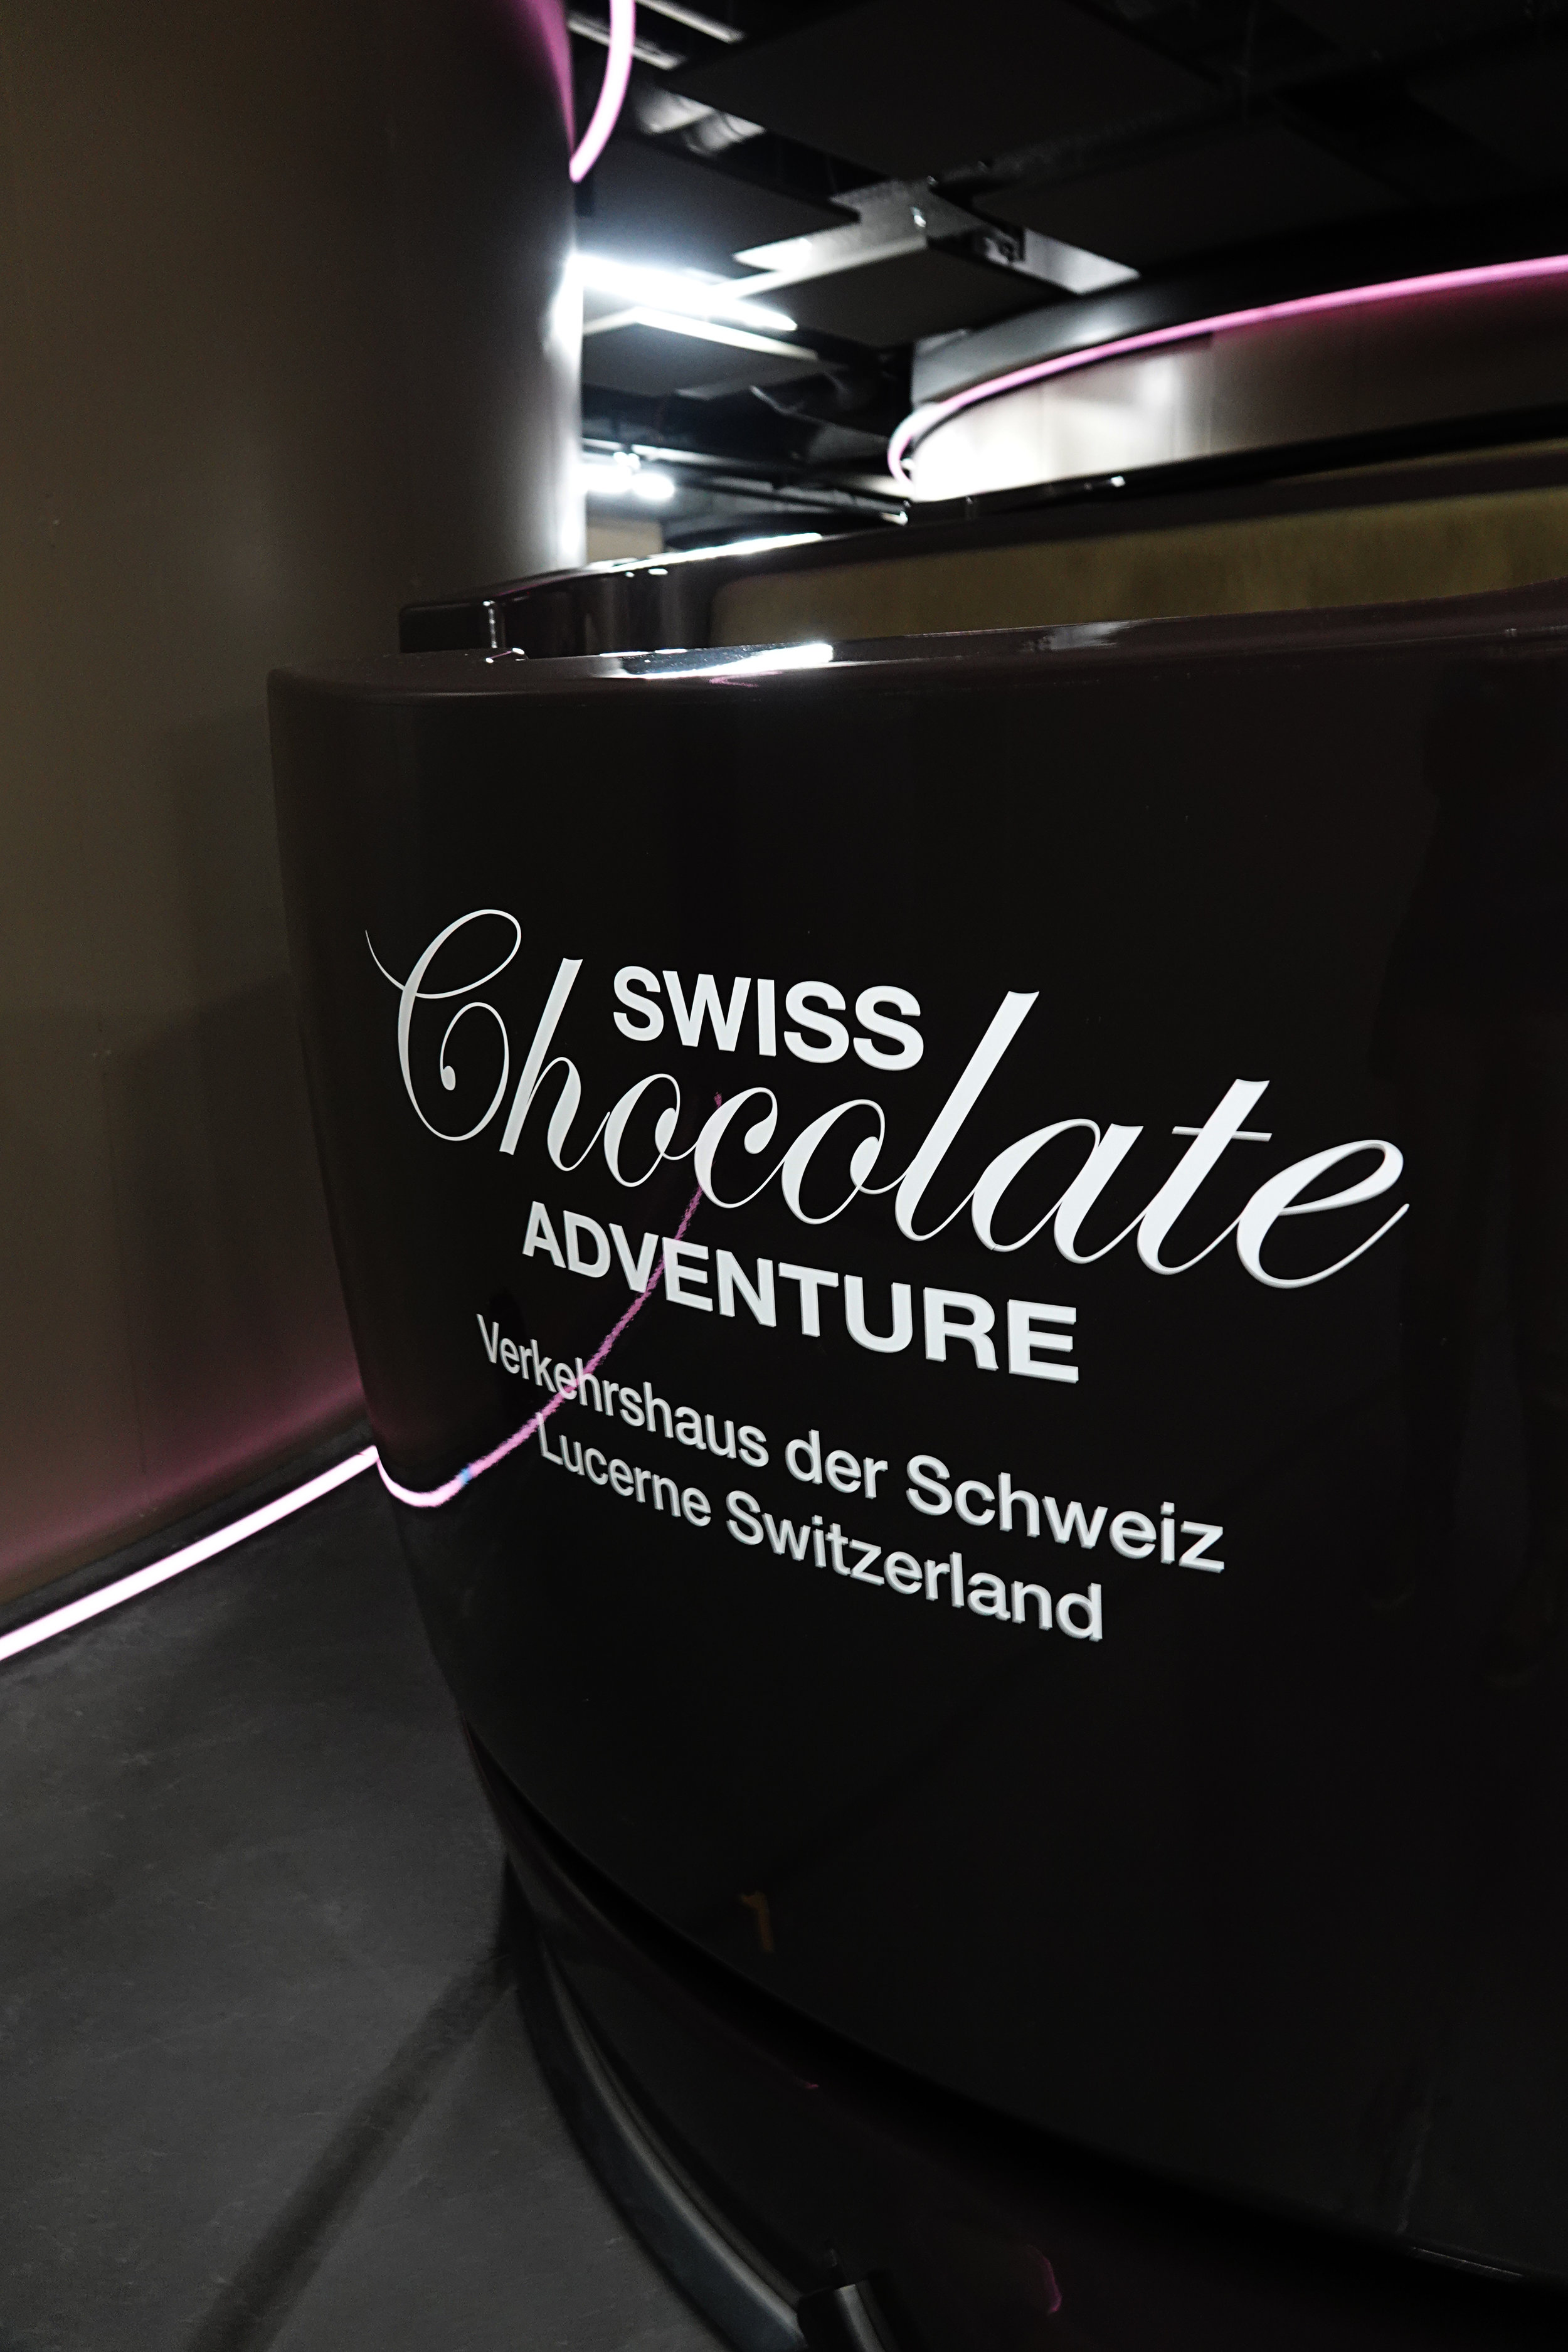 Luzern isst - Swiss Chocolate Adventure